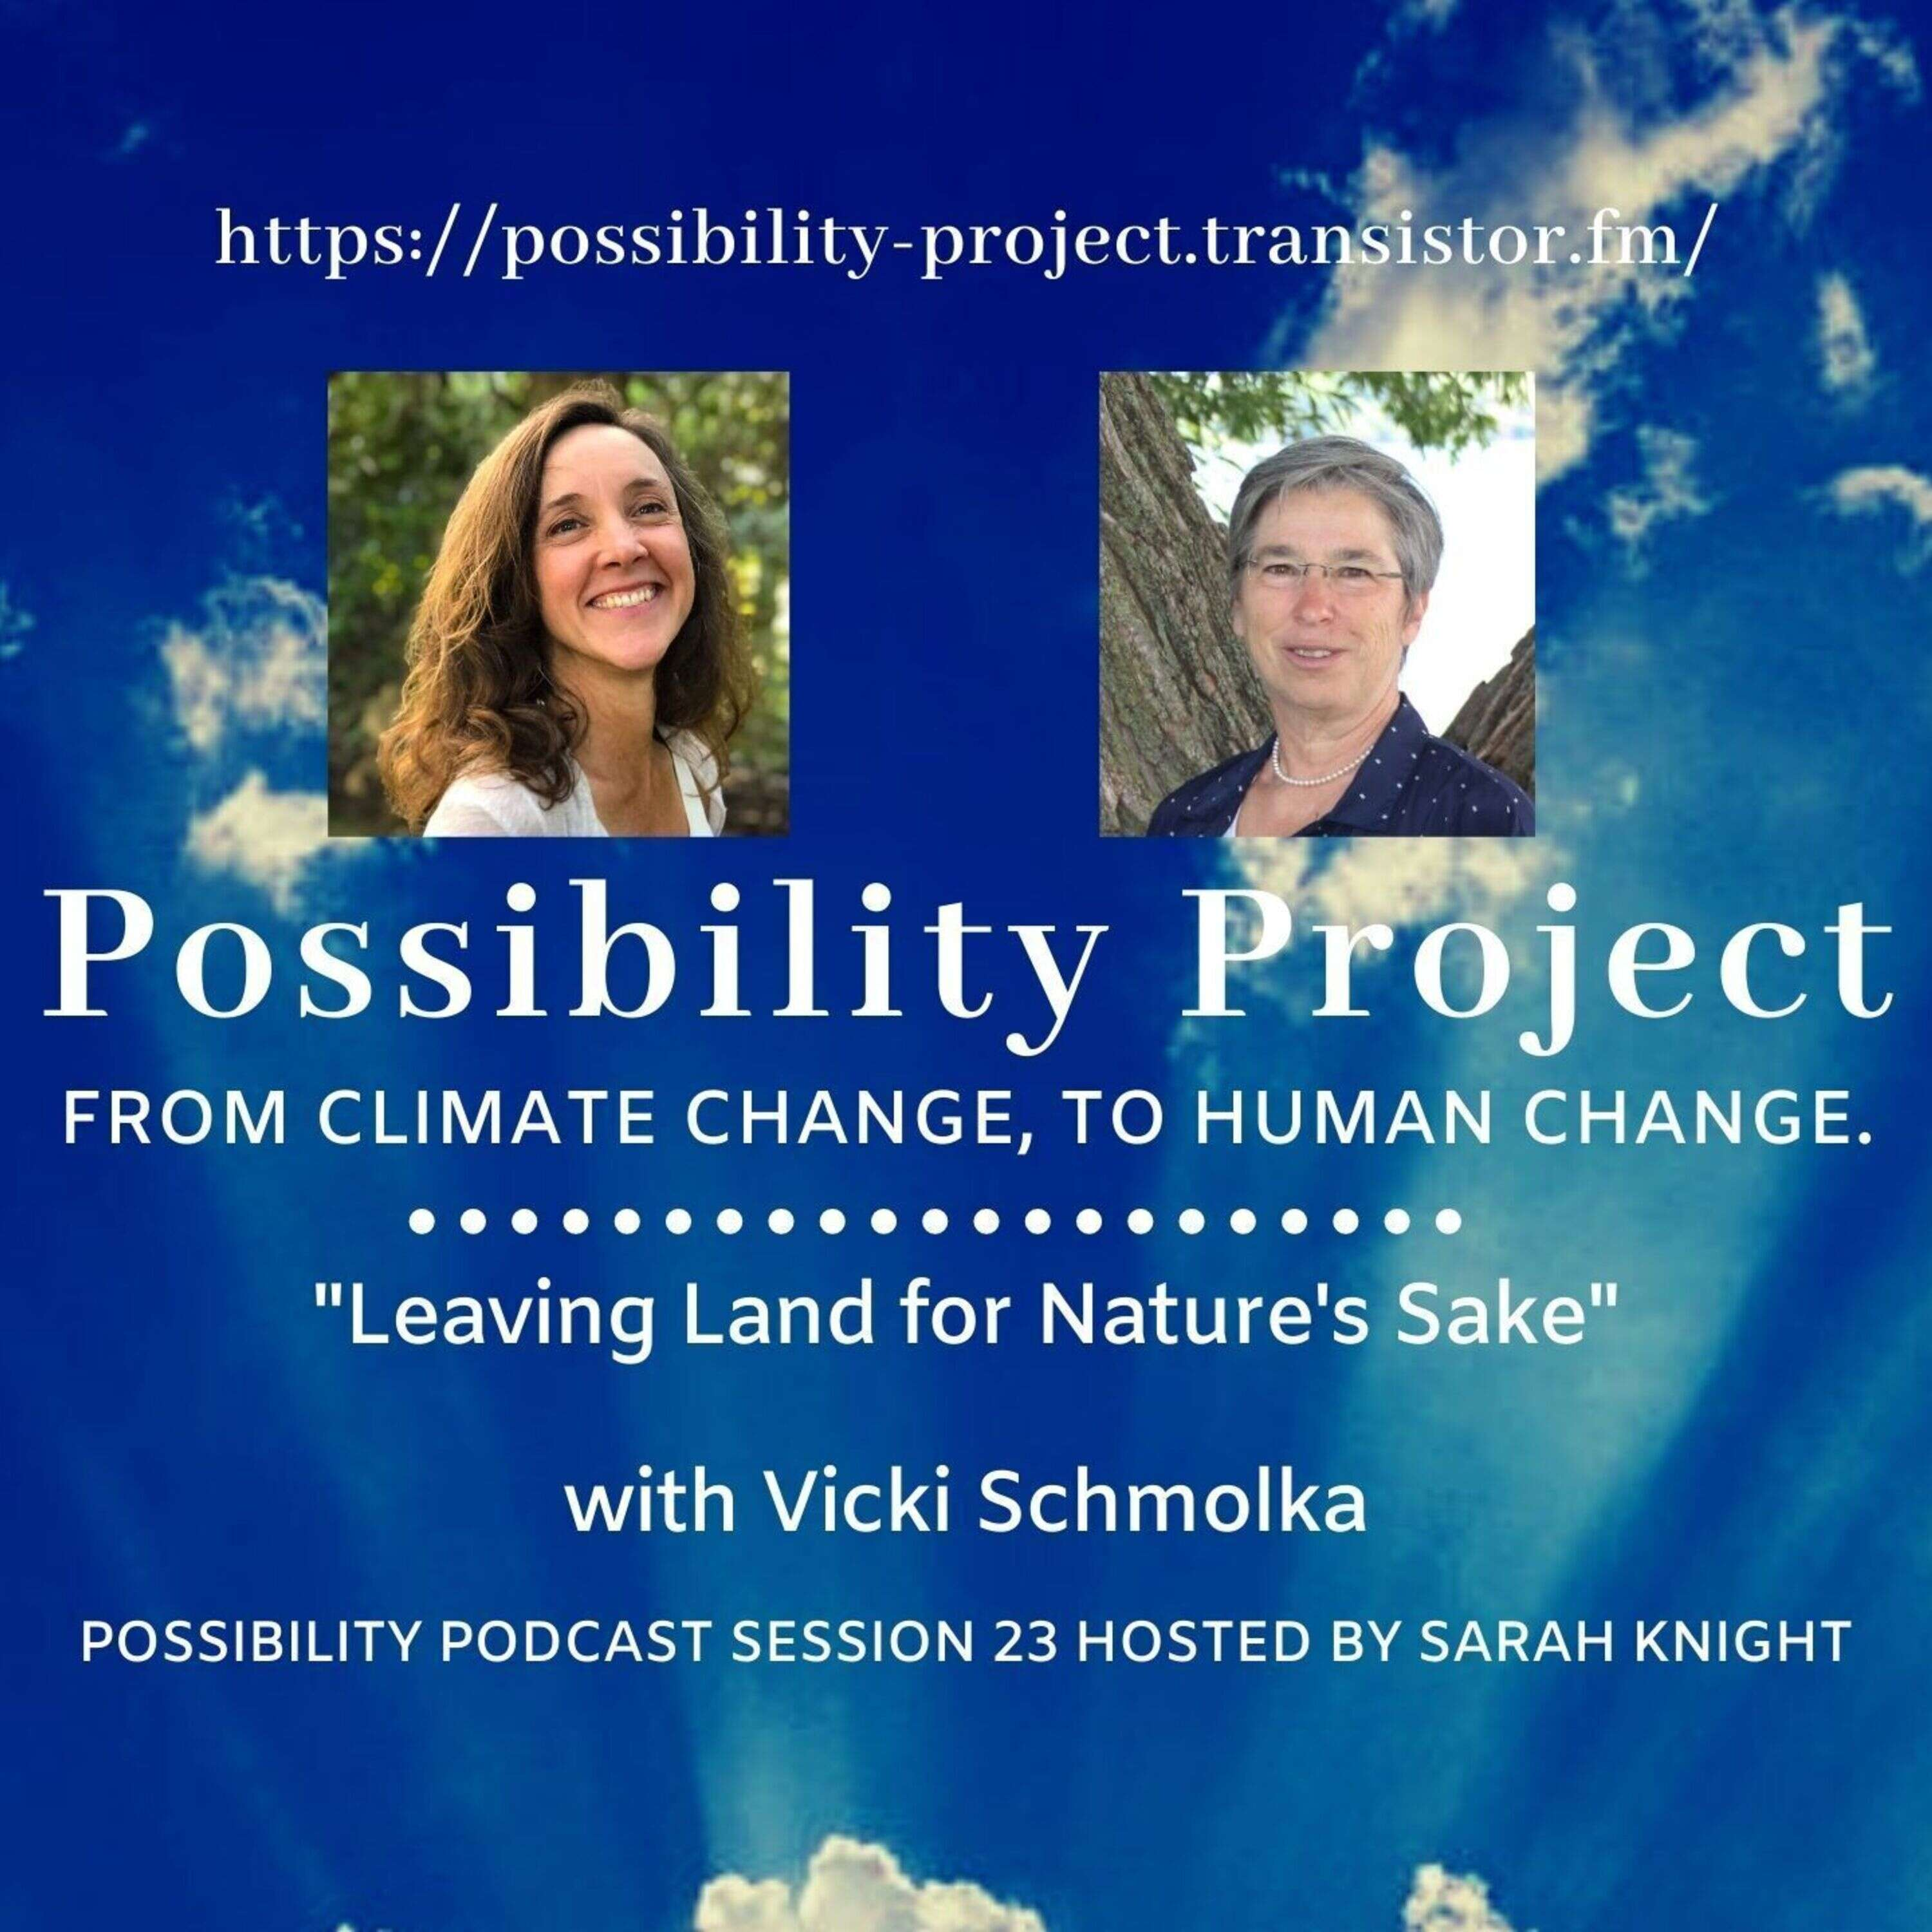 Leaving Land for Nature's Sake. Possibility Podcast Session 23